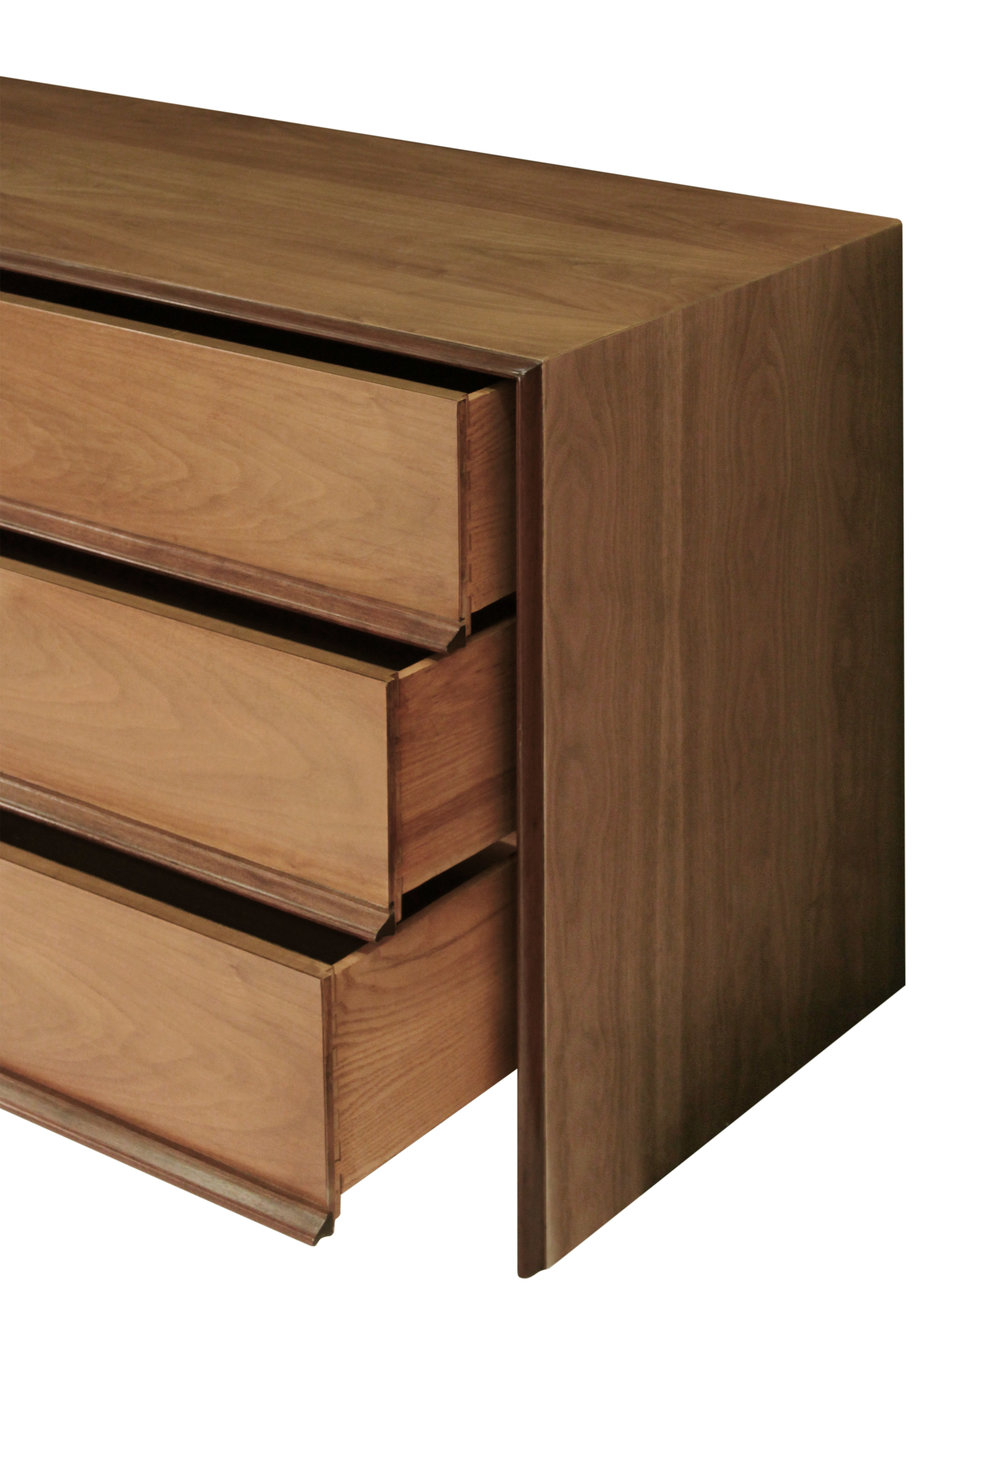 Gibbings 90 walnut framed out 6 d chestofdrawers125 open hires.jpg